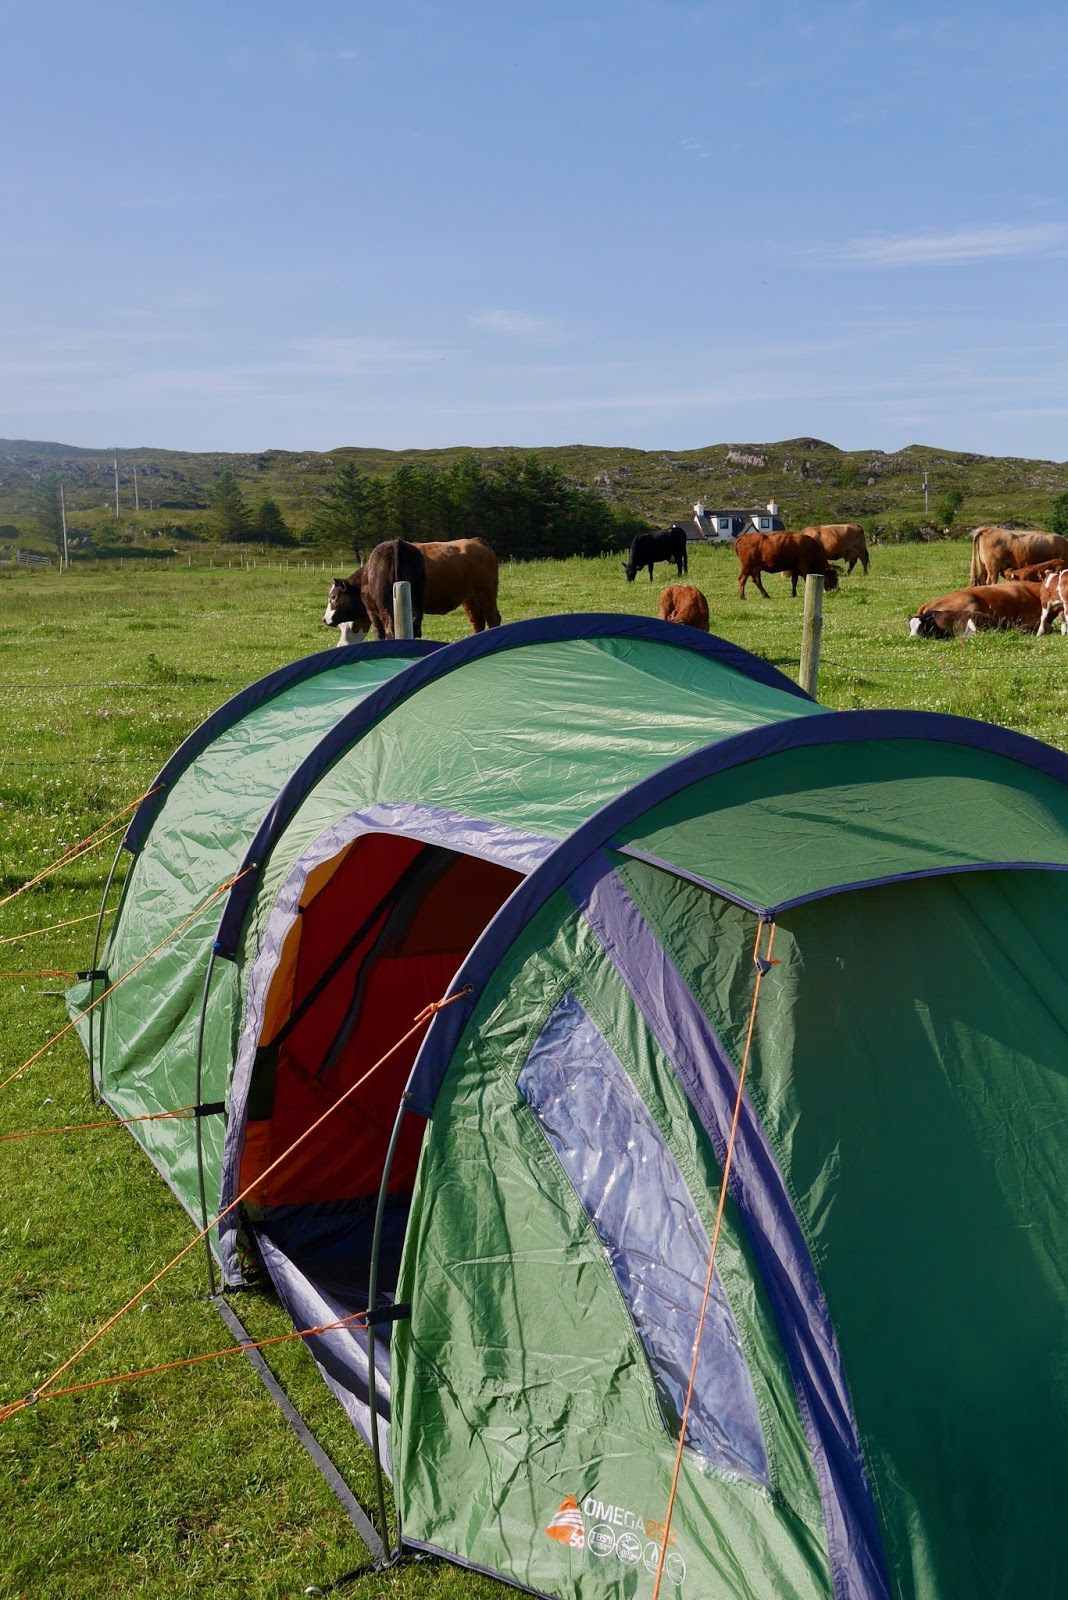 Camping in Arisiag with the cows